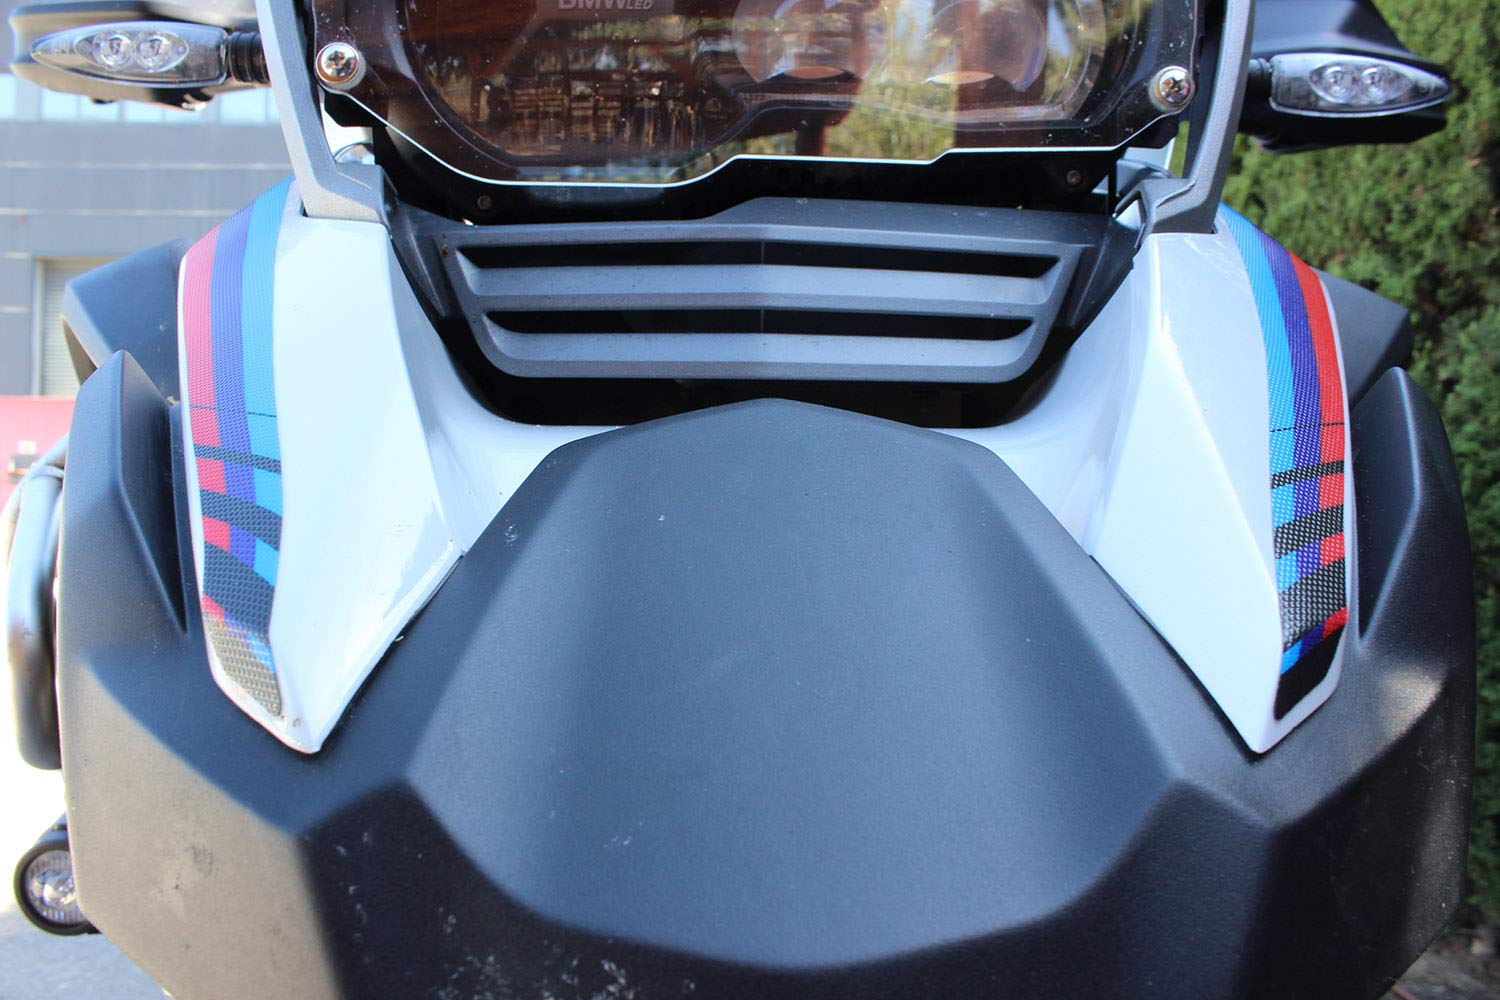 R1250GS Adv. Decoration kit Uniracing BMW R1200GS Adv LC 14-18